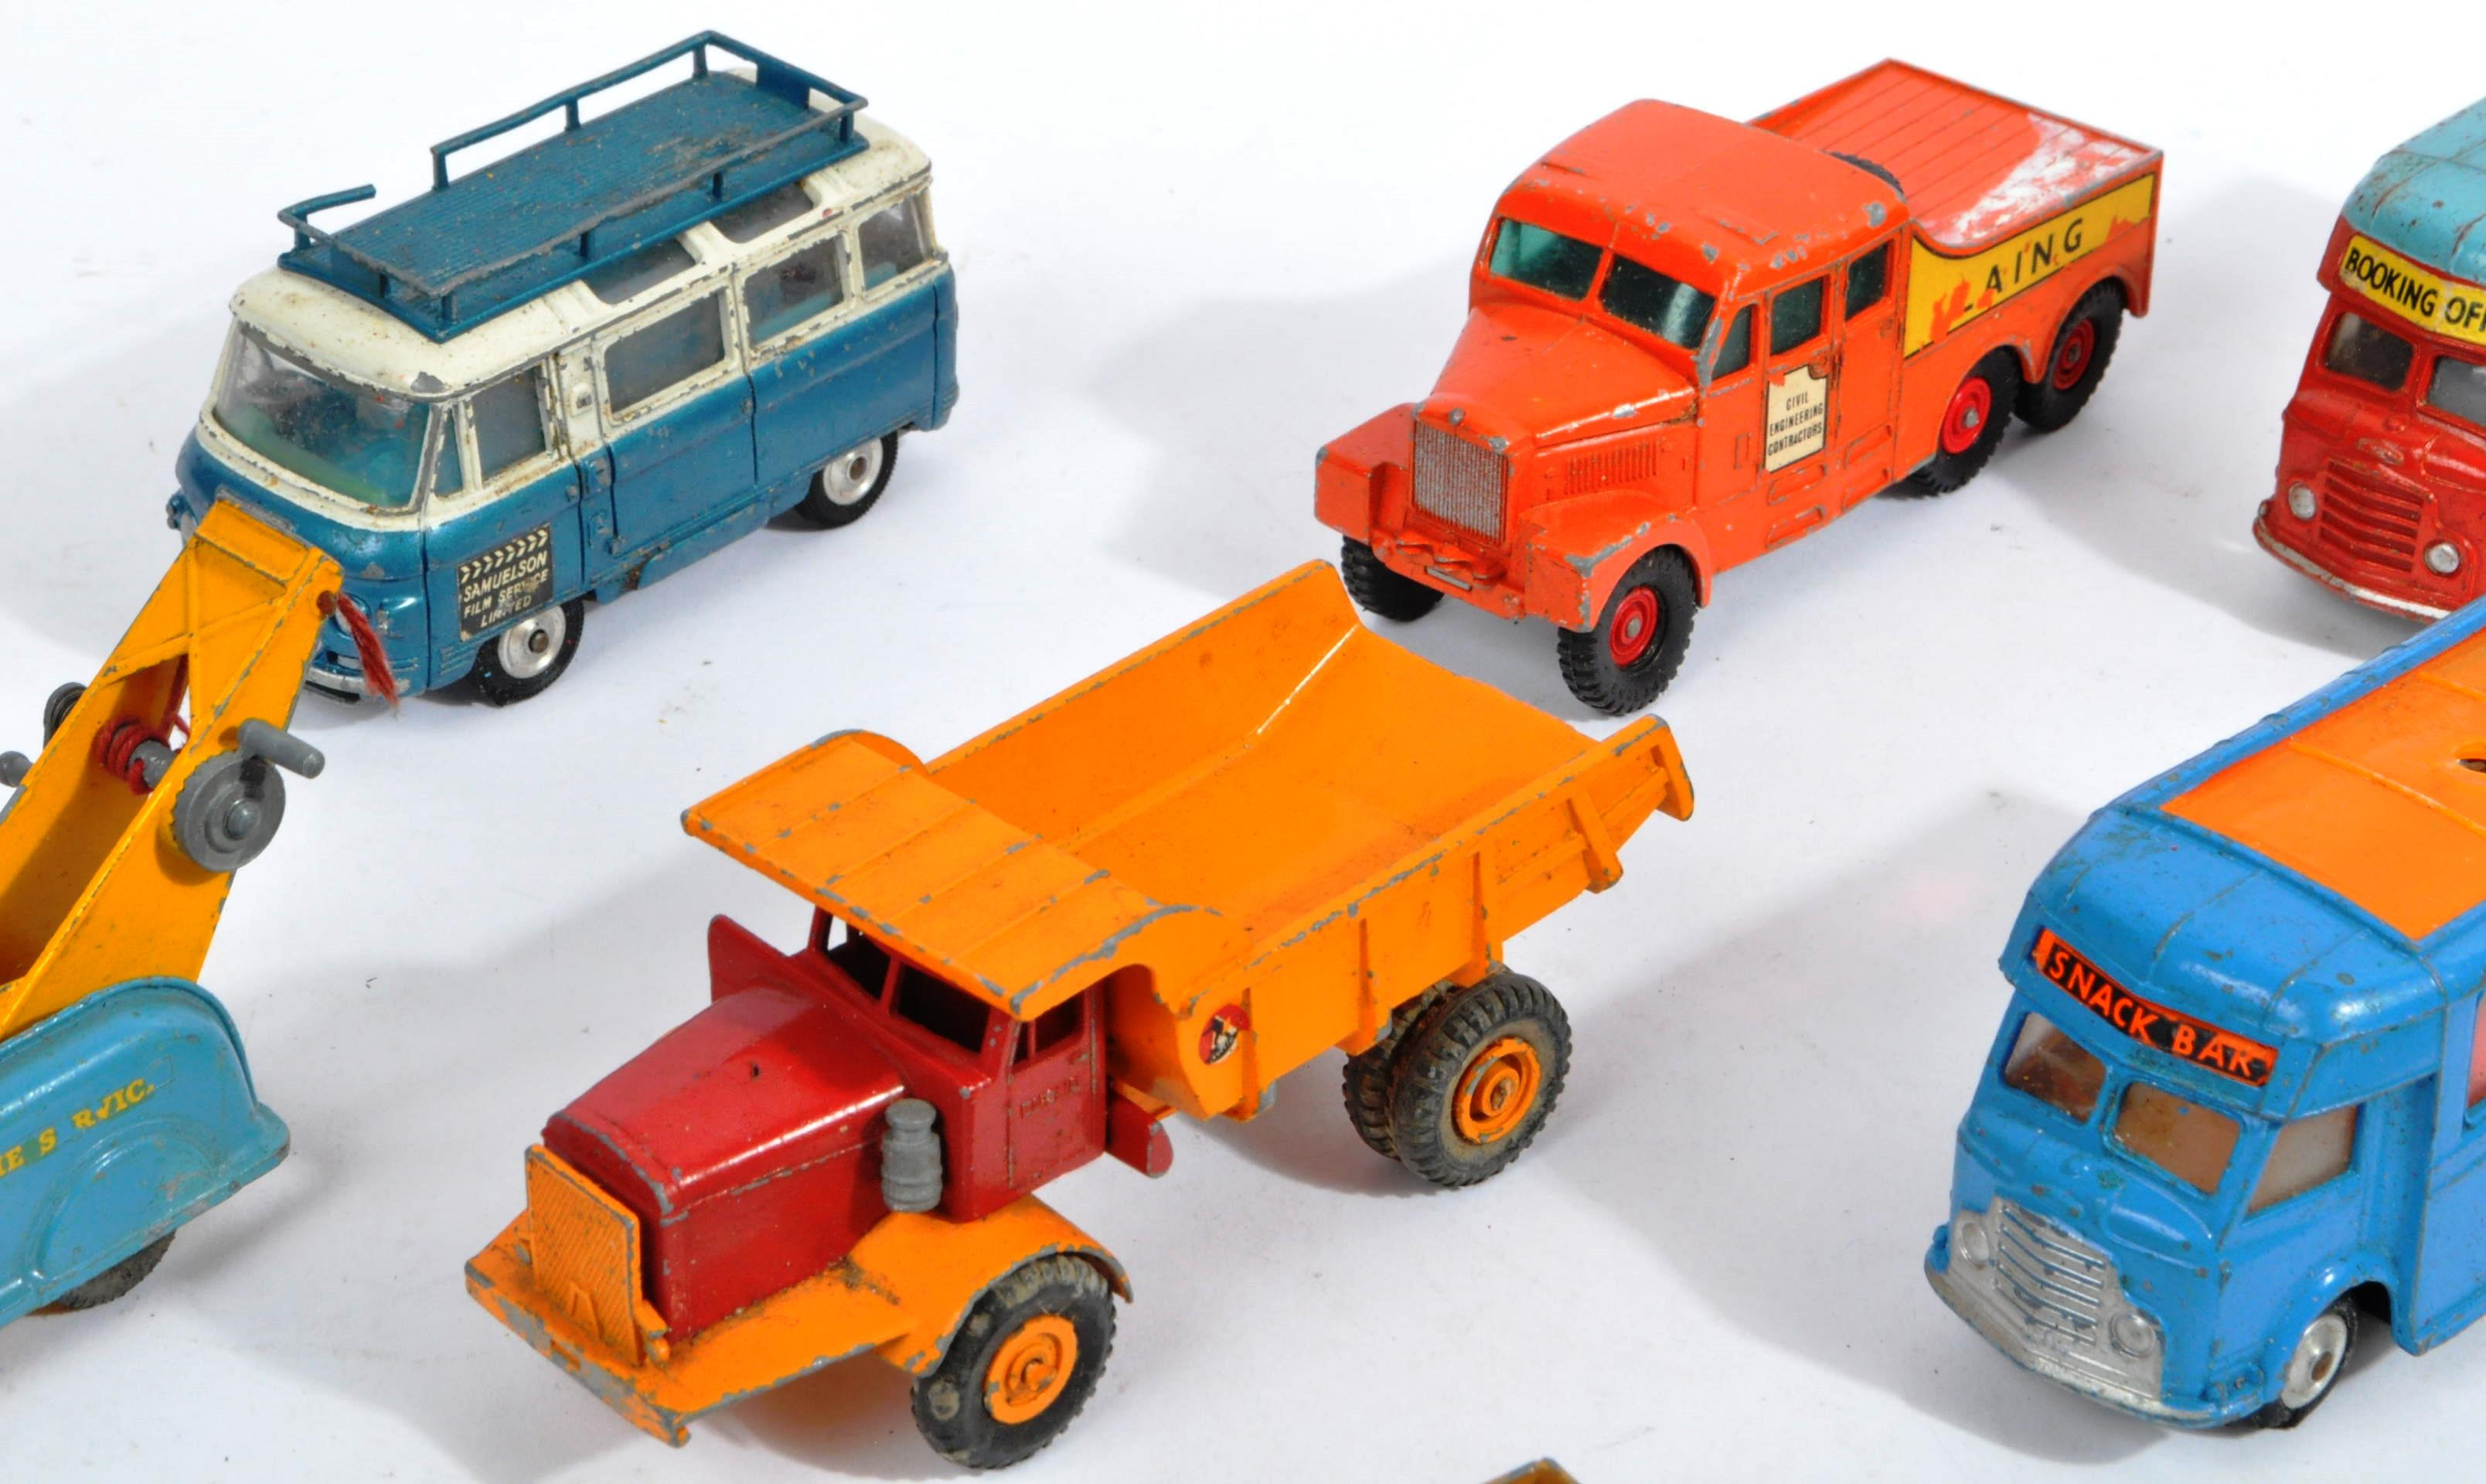 COLLECTION OF VINTAGE CORGI & DINKY TOYS DIECAST MODELS - Image 3 of 10